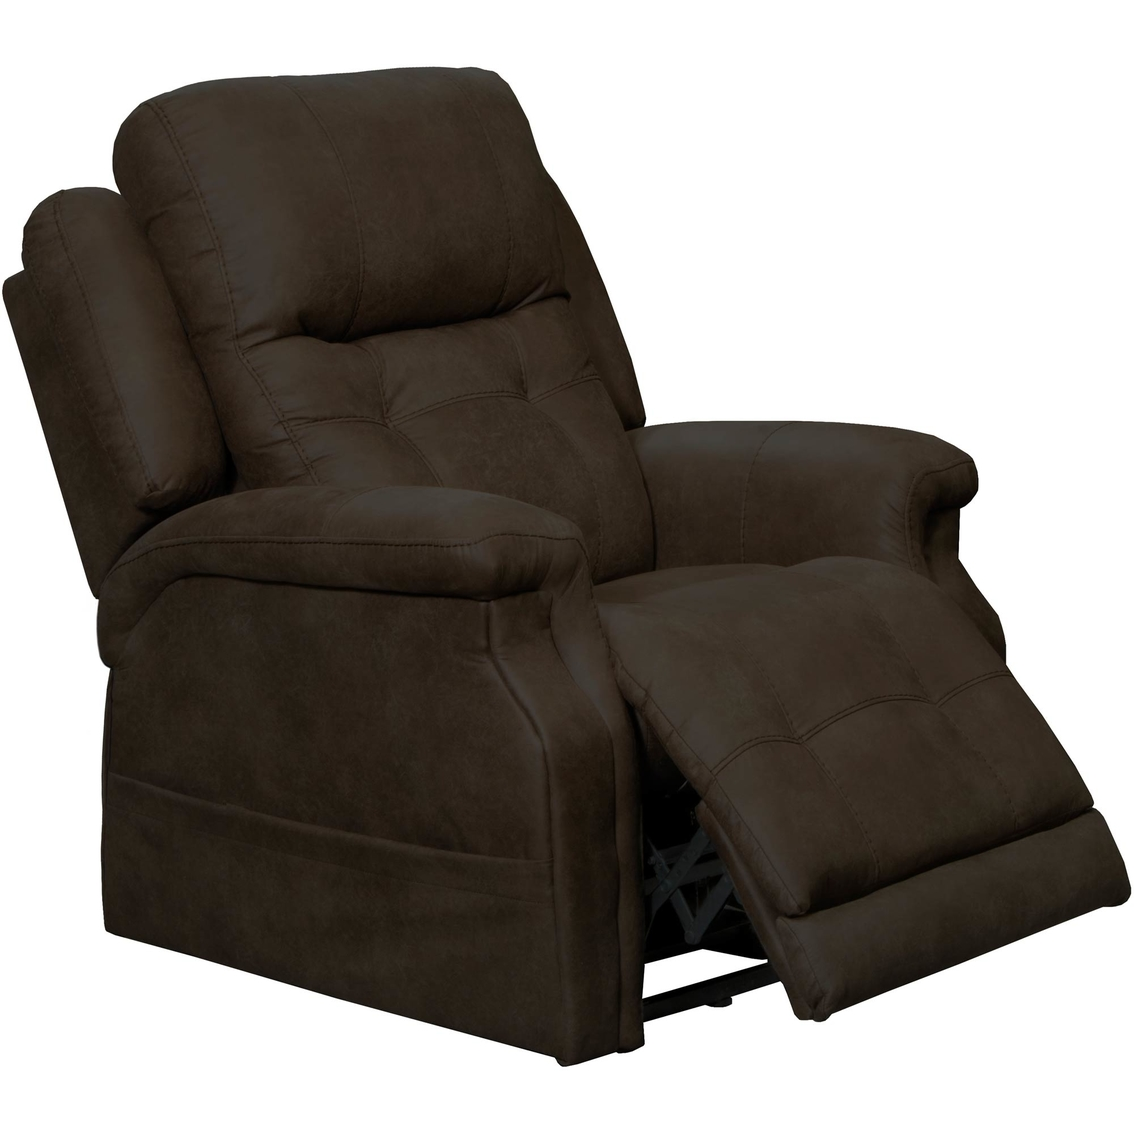 Catnapper Haywood Power Headrest Lift Recliner Chairs Recliners Furniture Appliances Shop The Exchange